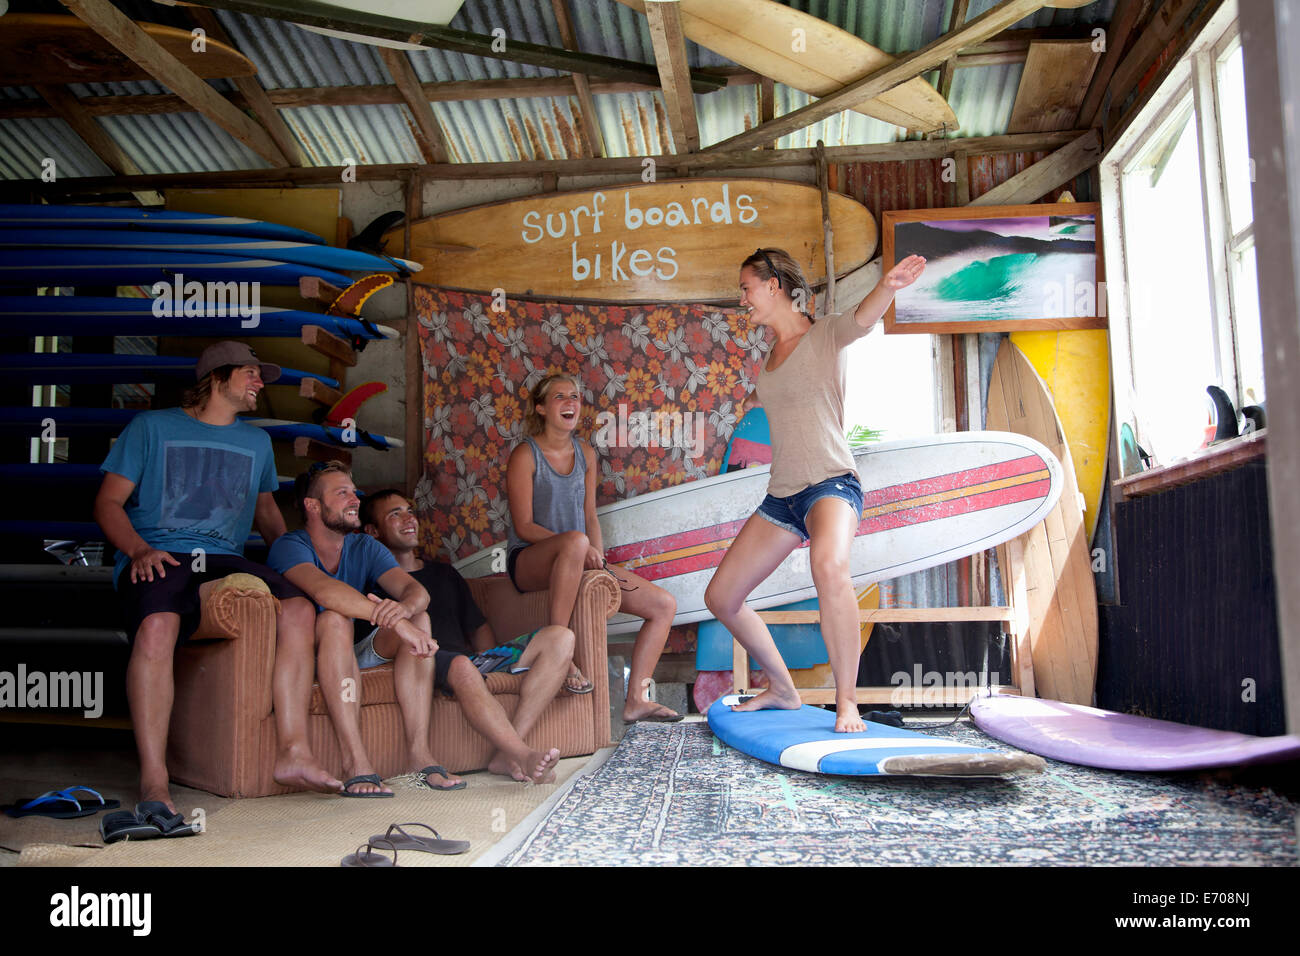 Five young adult surfer friends fooling around in surf shed - Stock Image